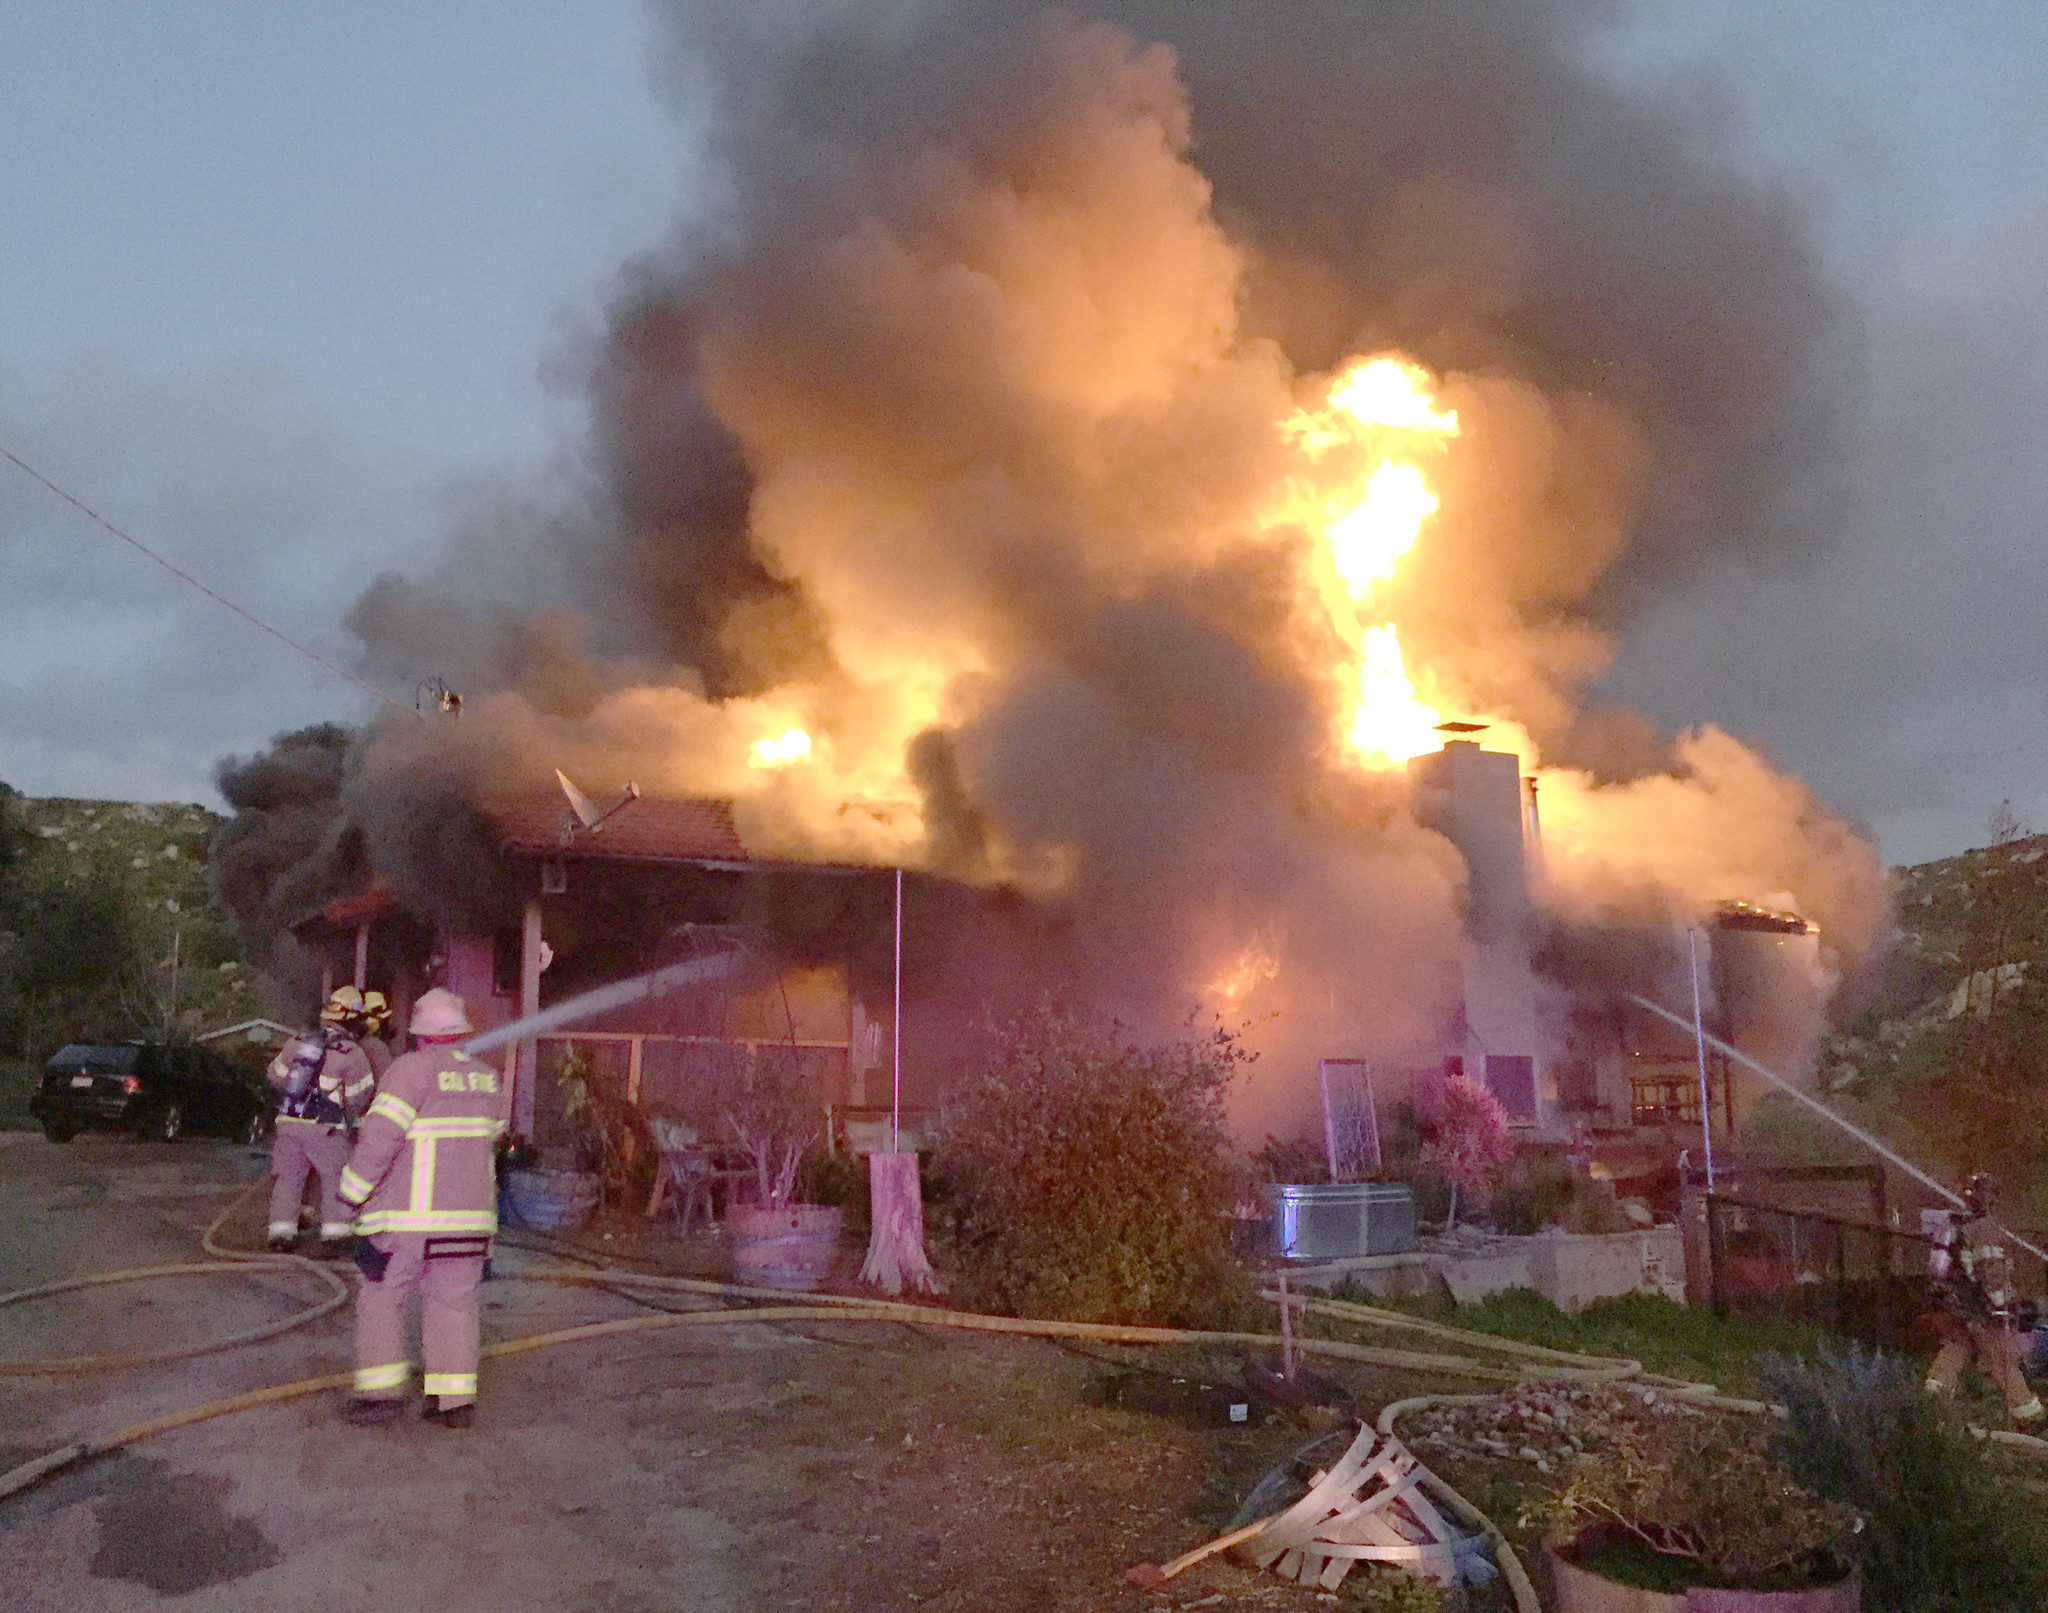 As flames shoot in the air, firefighters contain the blaze to the home.